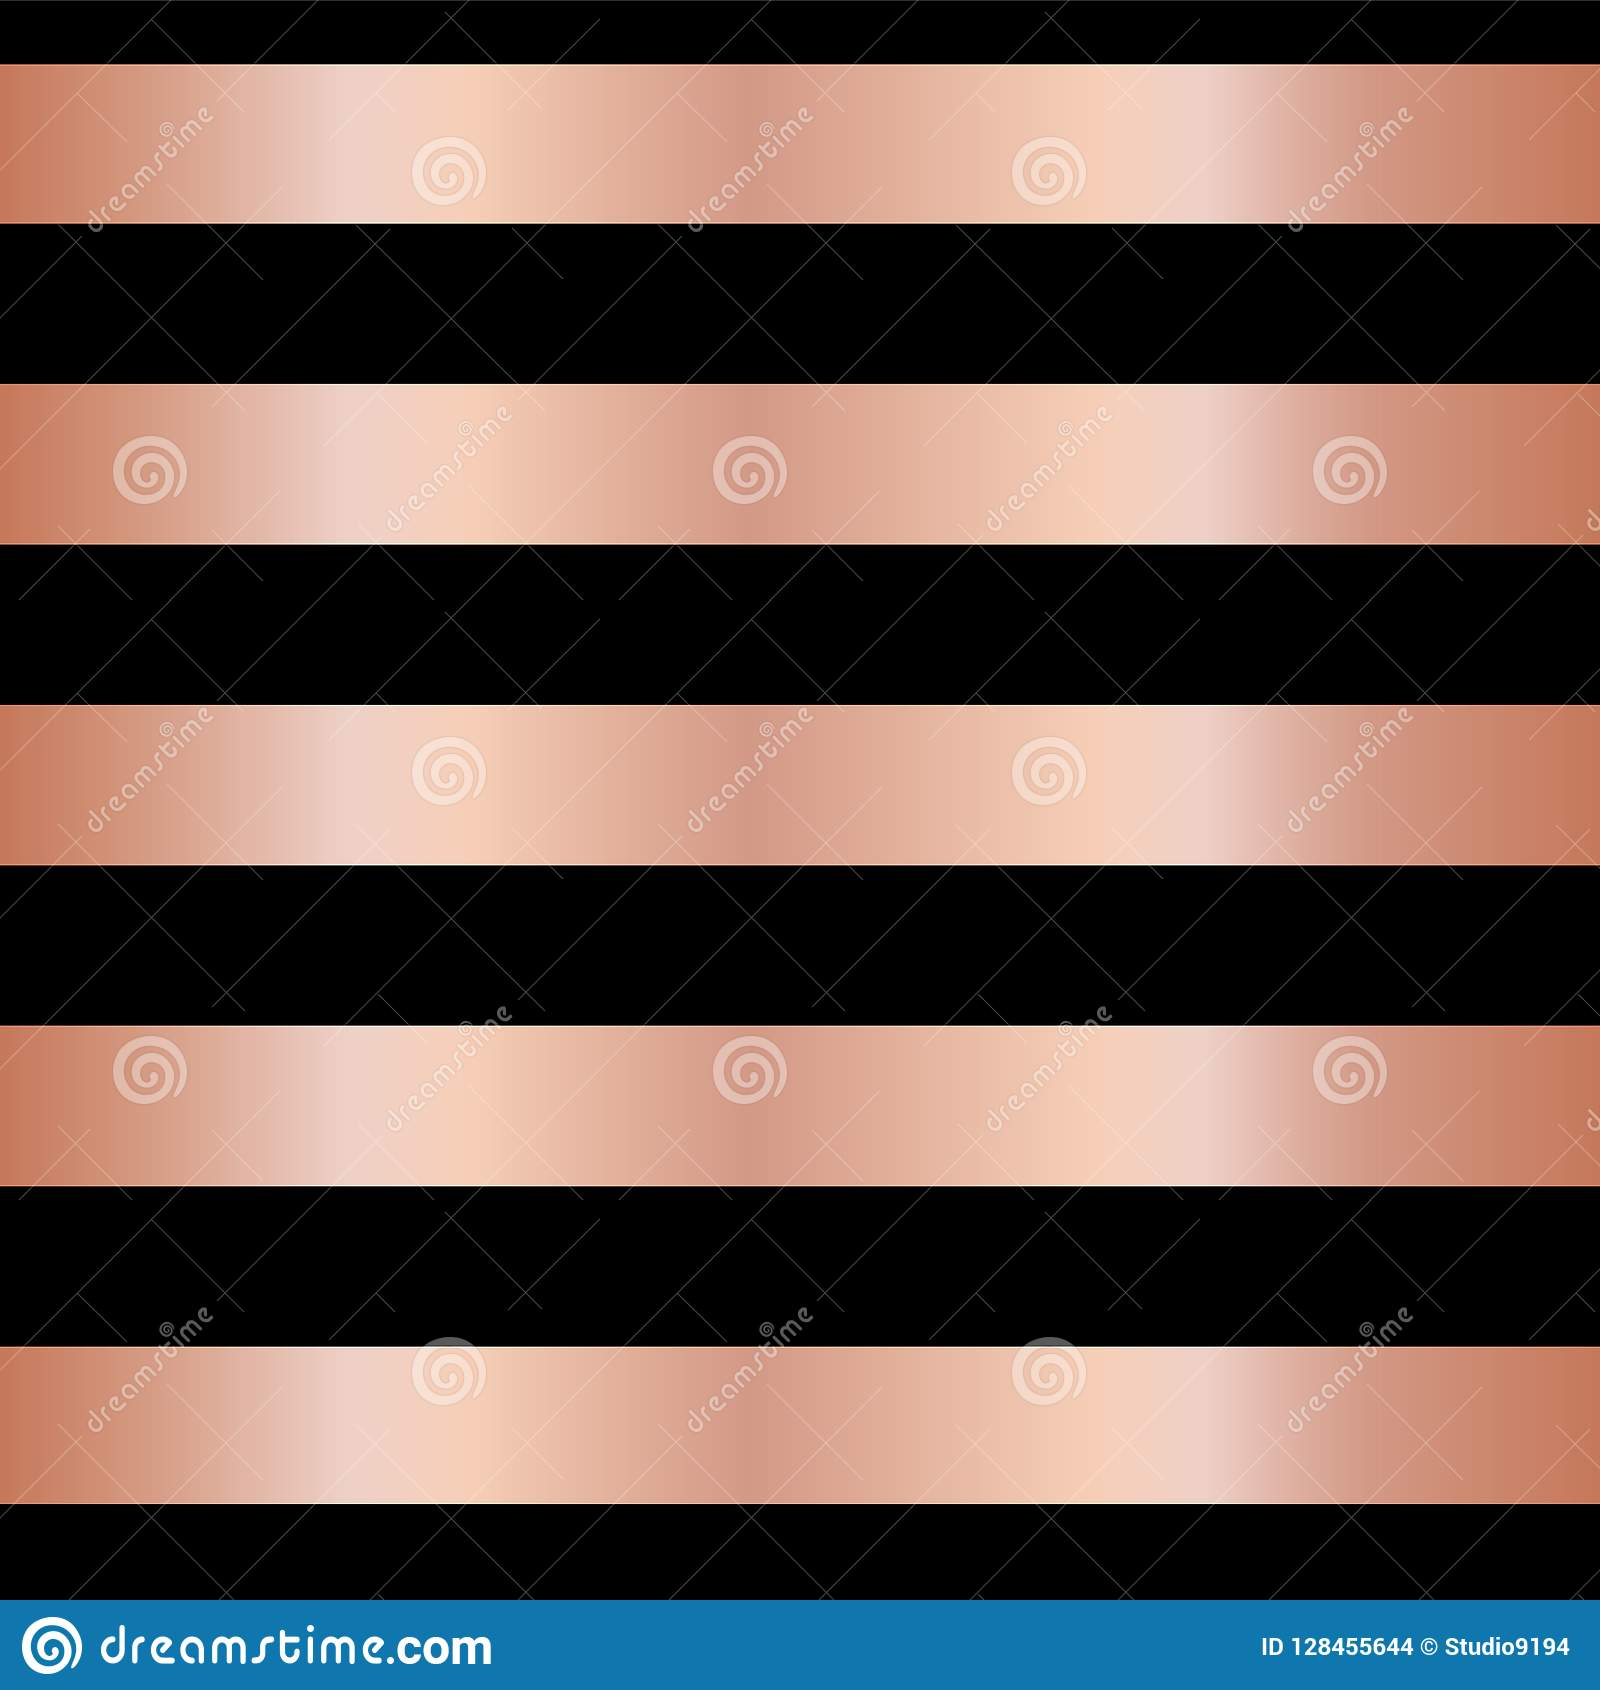 copper rose gold foil stripes on black seamless vector pattern background horizontal metallic shiny lines christmas new year wallpapers scrap booking